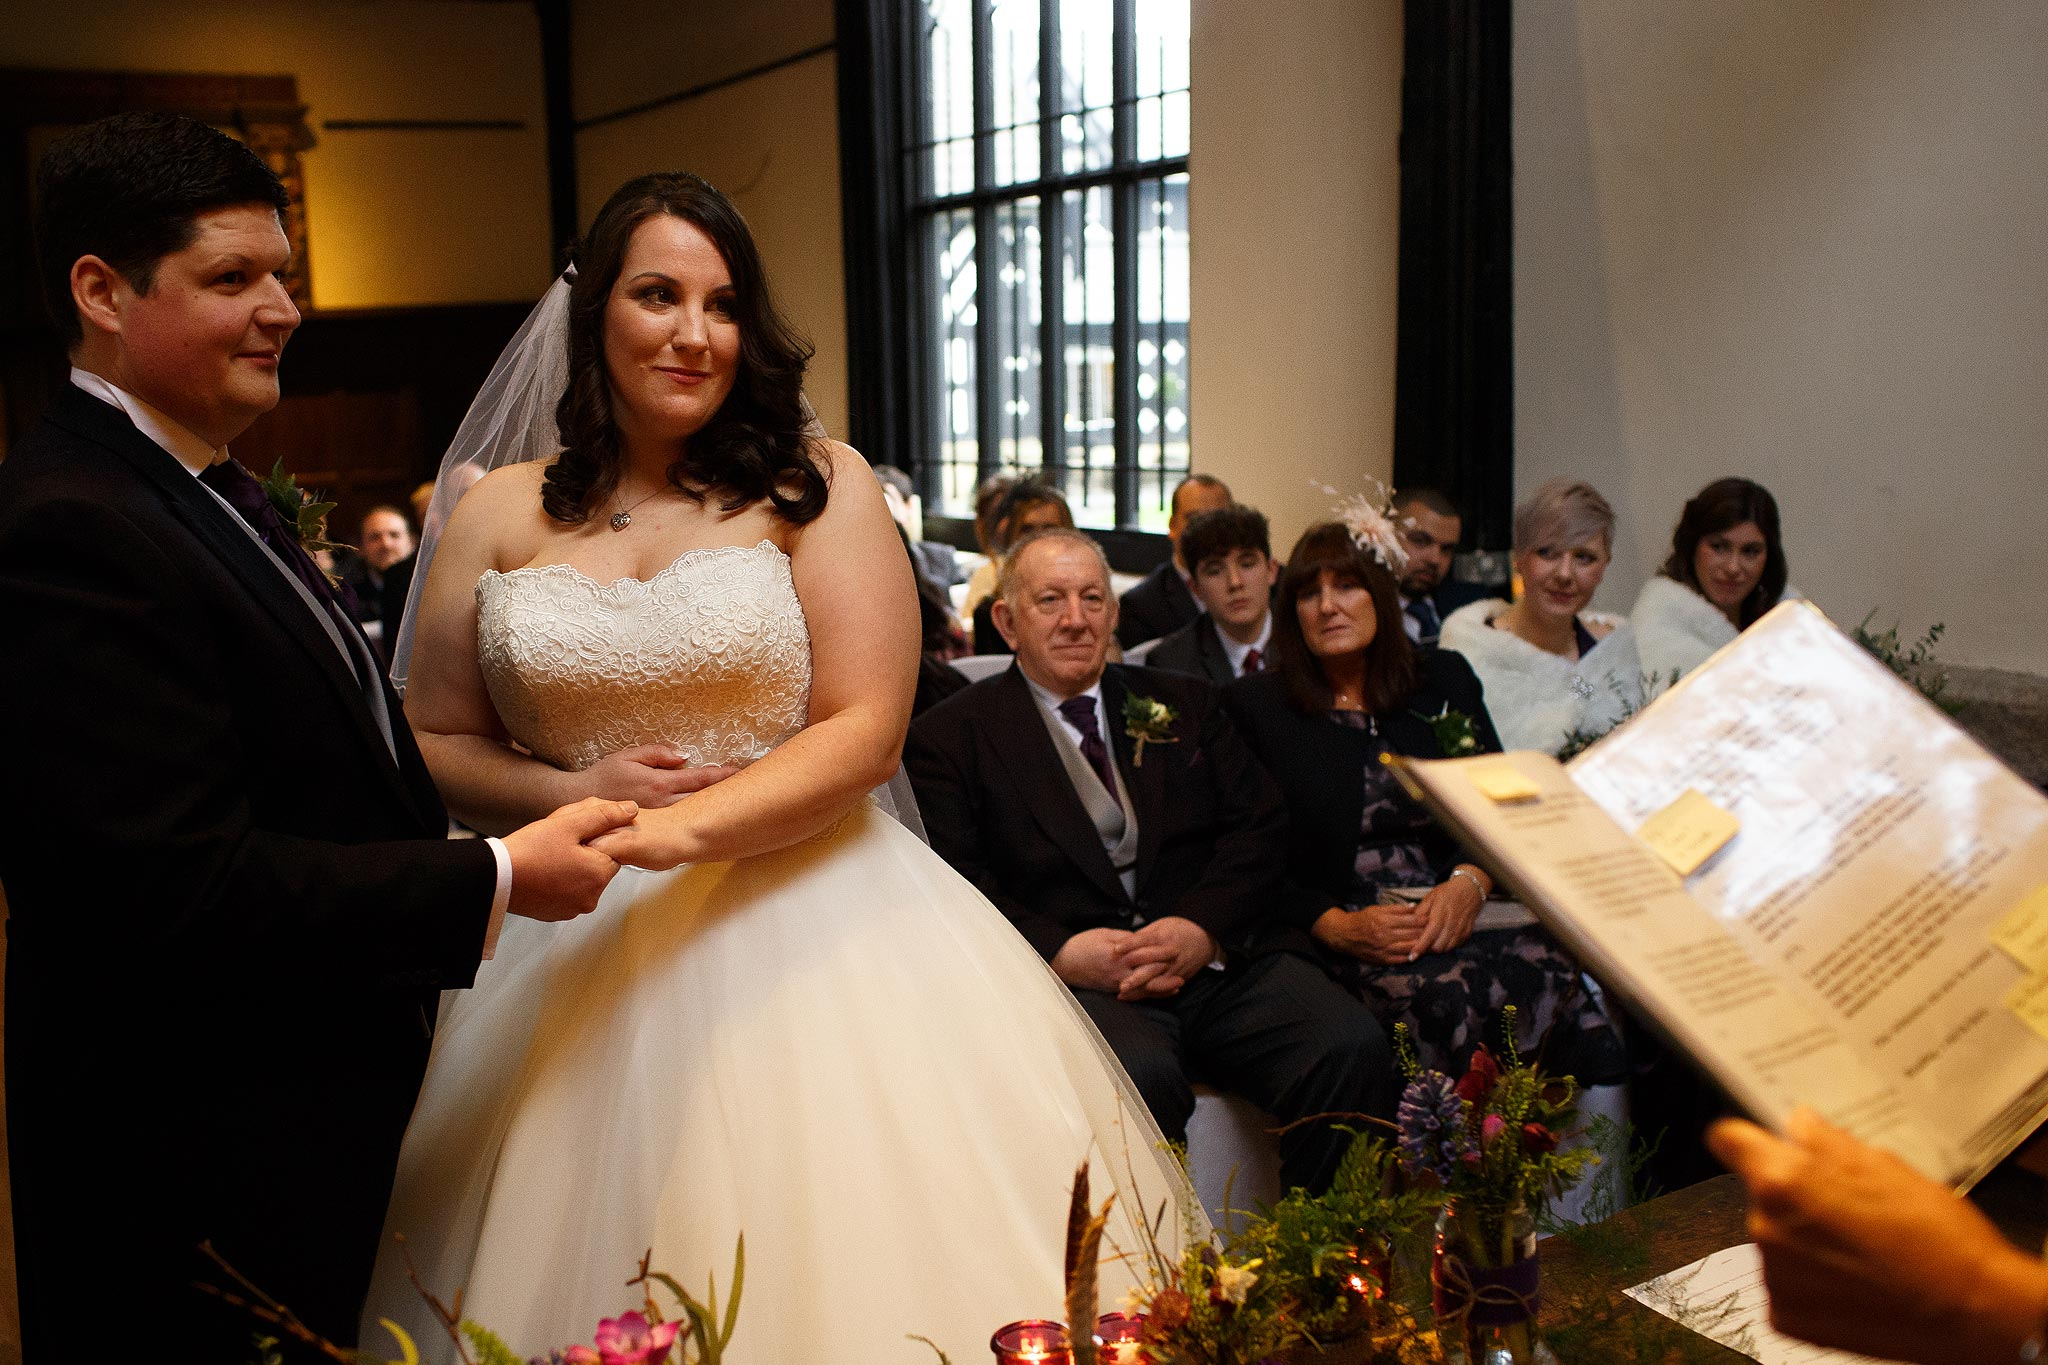 Bride and groom exchanging vows at Samlesbury Hall Wedding